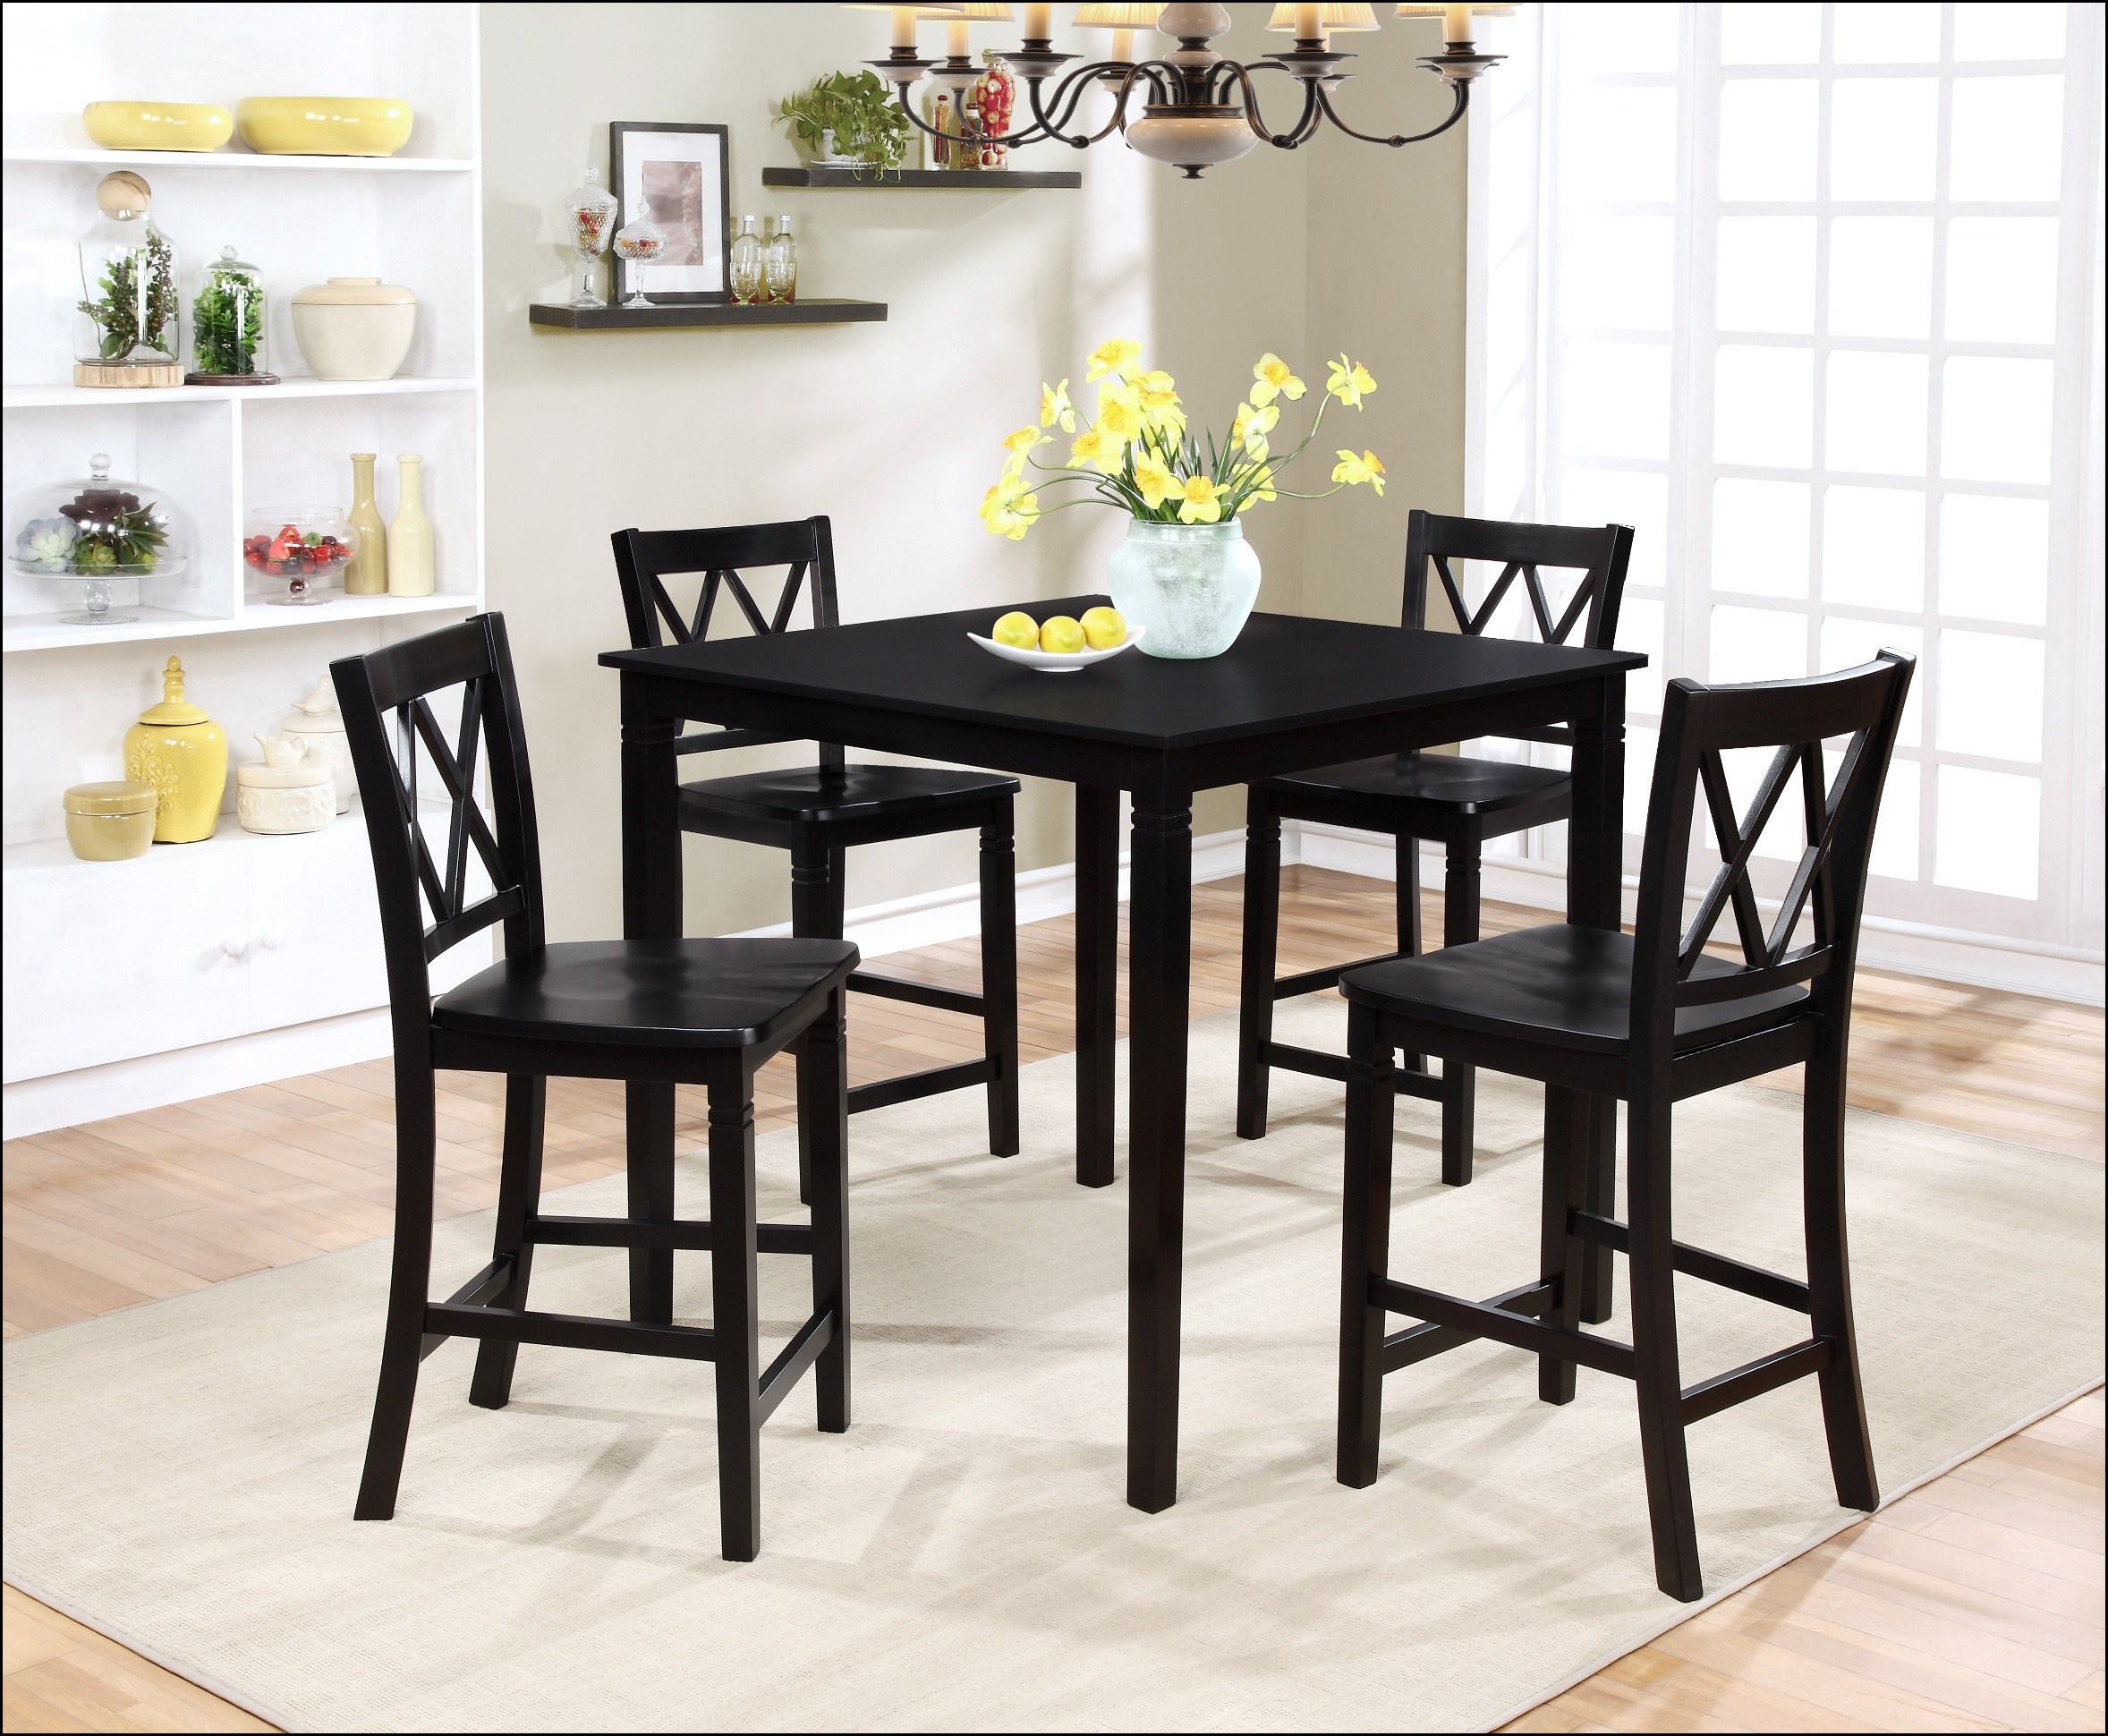 Kmart dining room set